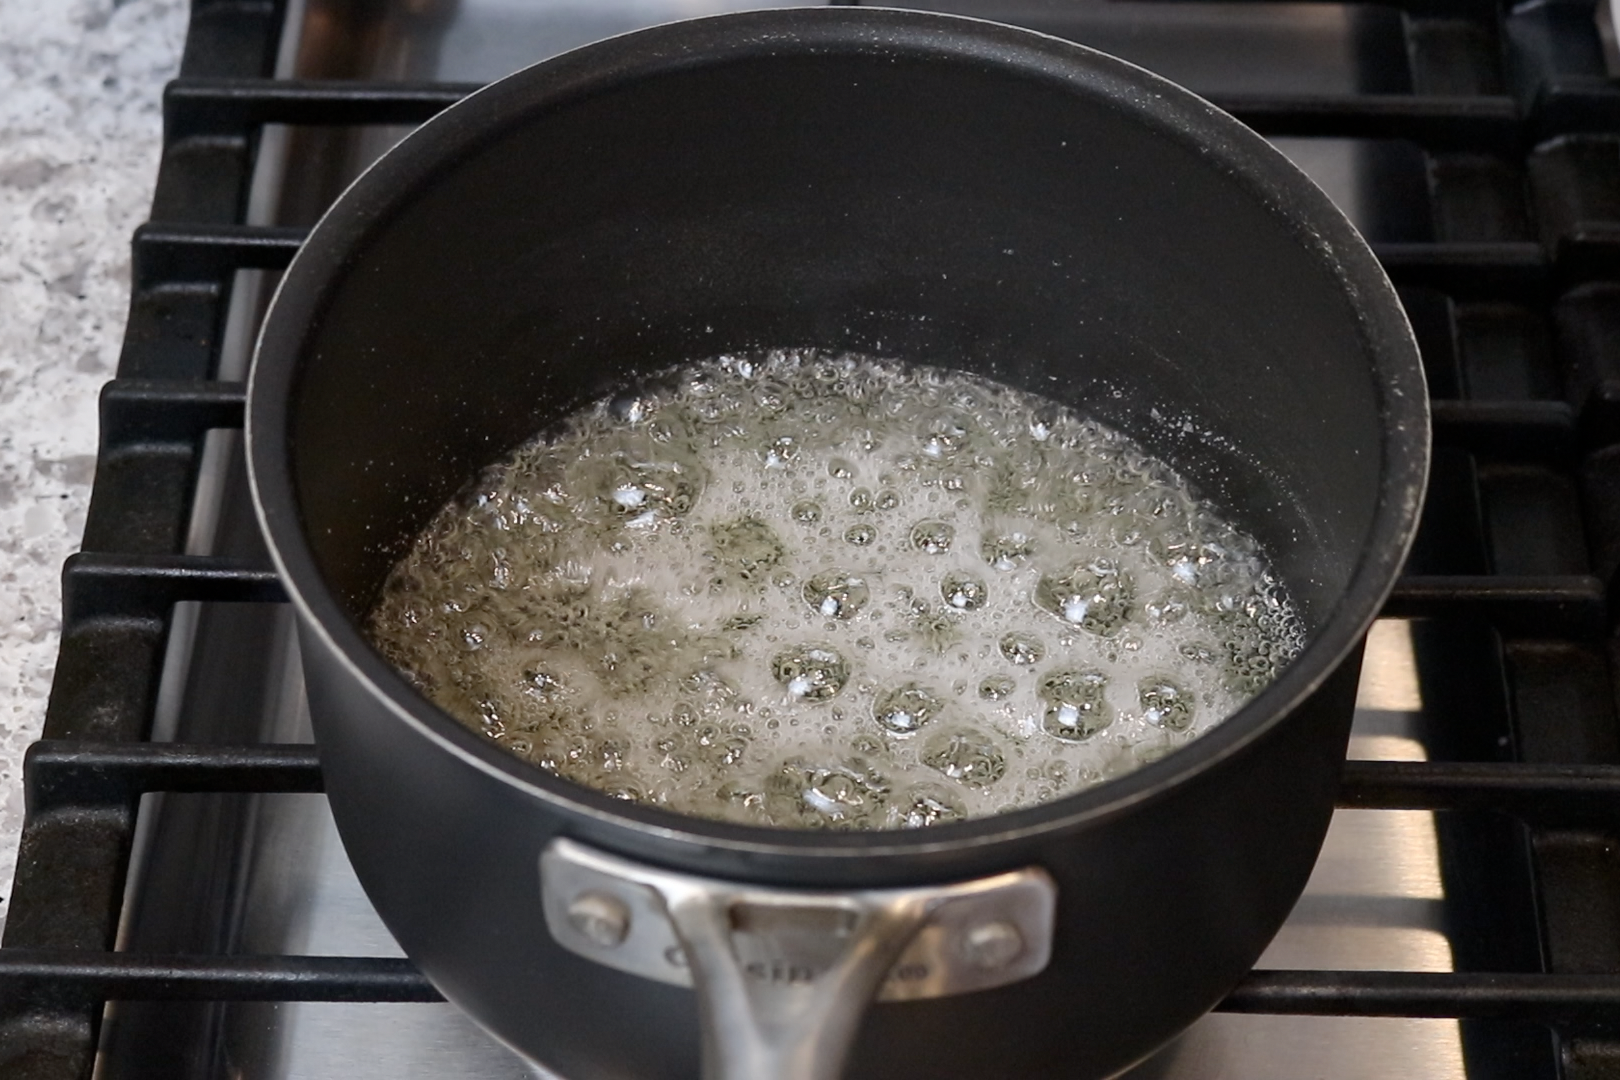 3. Bring to a boil over medium heat. Let mixture boil for around 5 minutes without stirring. -